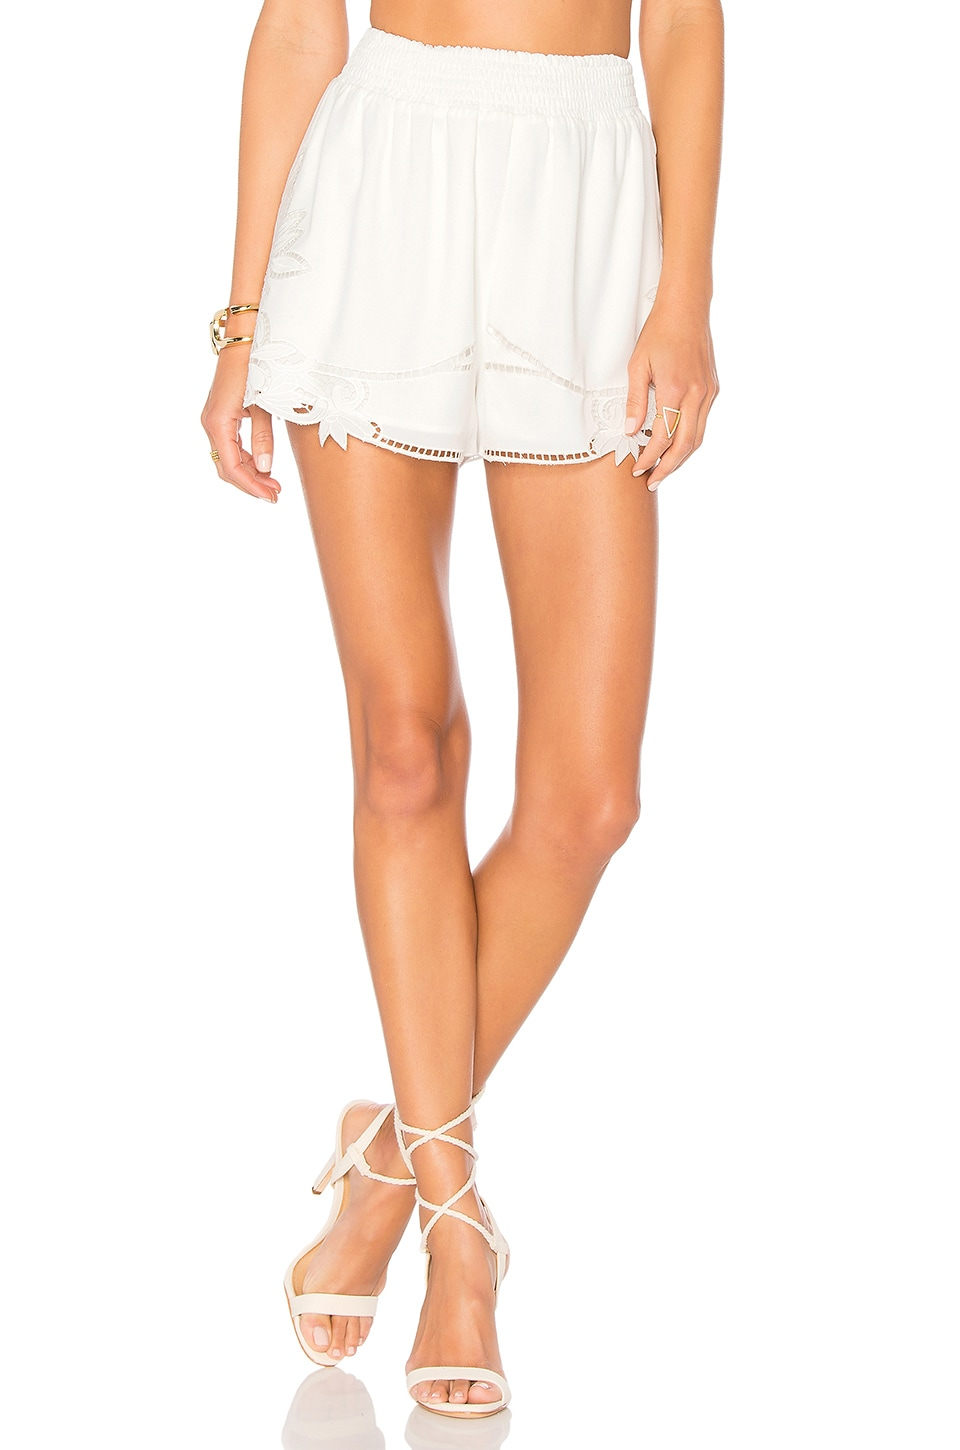 Lovers + Friends Dita Shorts in Ivory